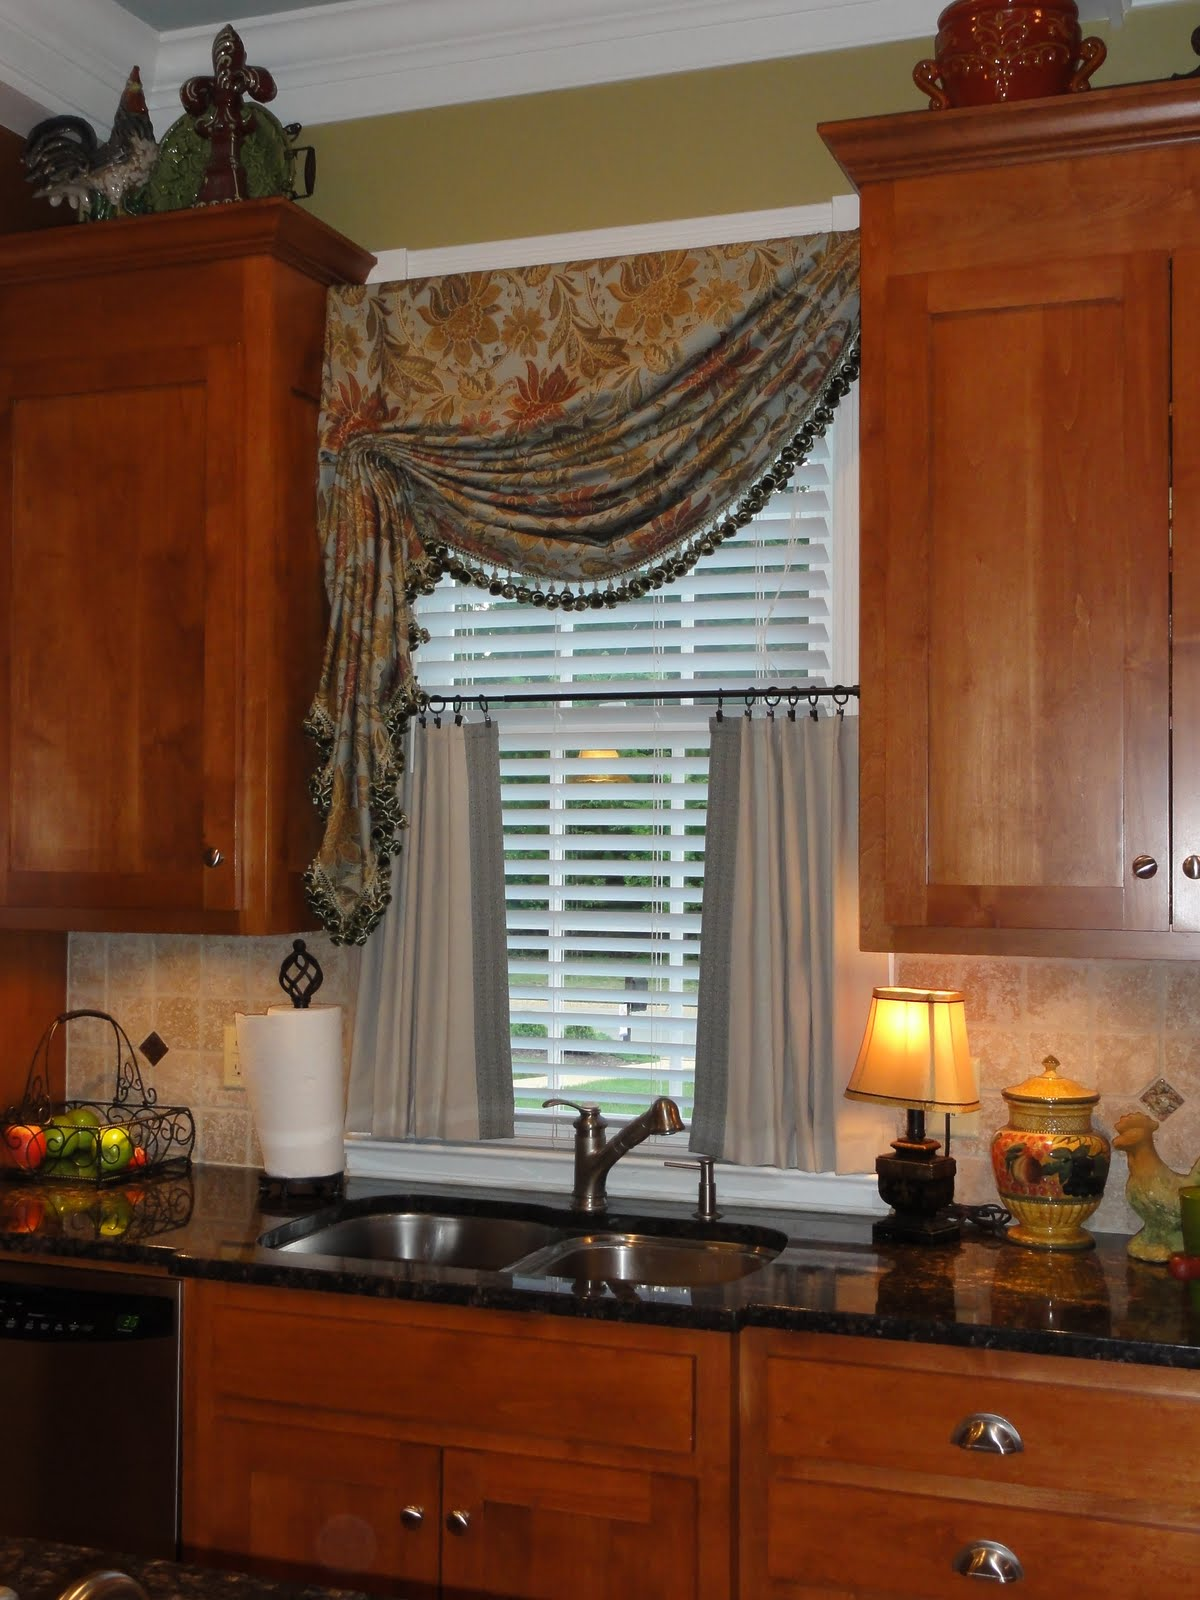 Best Kitchen Gallery: Window Treatments For Small Windows In Kitchen Homesfeed of Kitchen Counter Shutters on rachelxblog.com